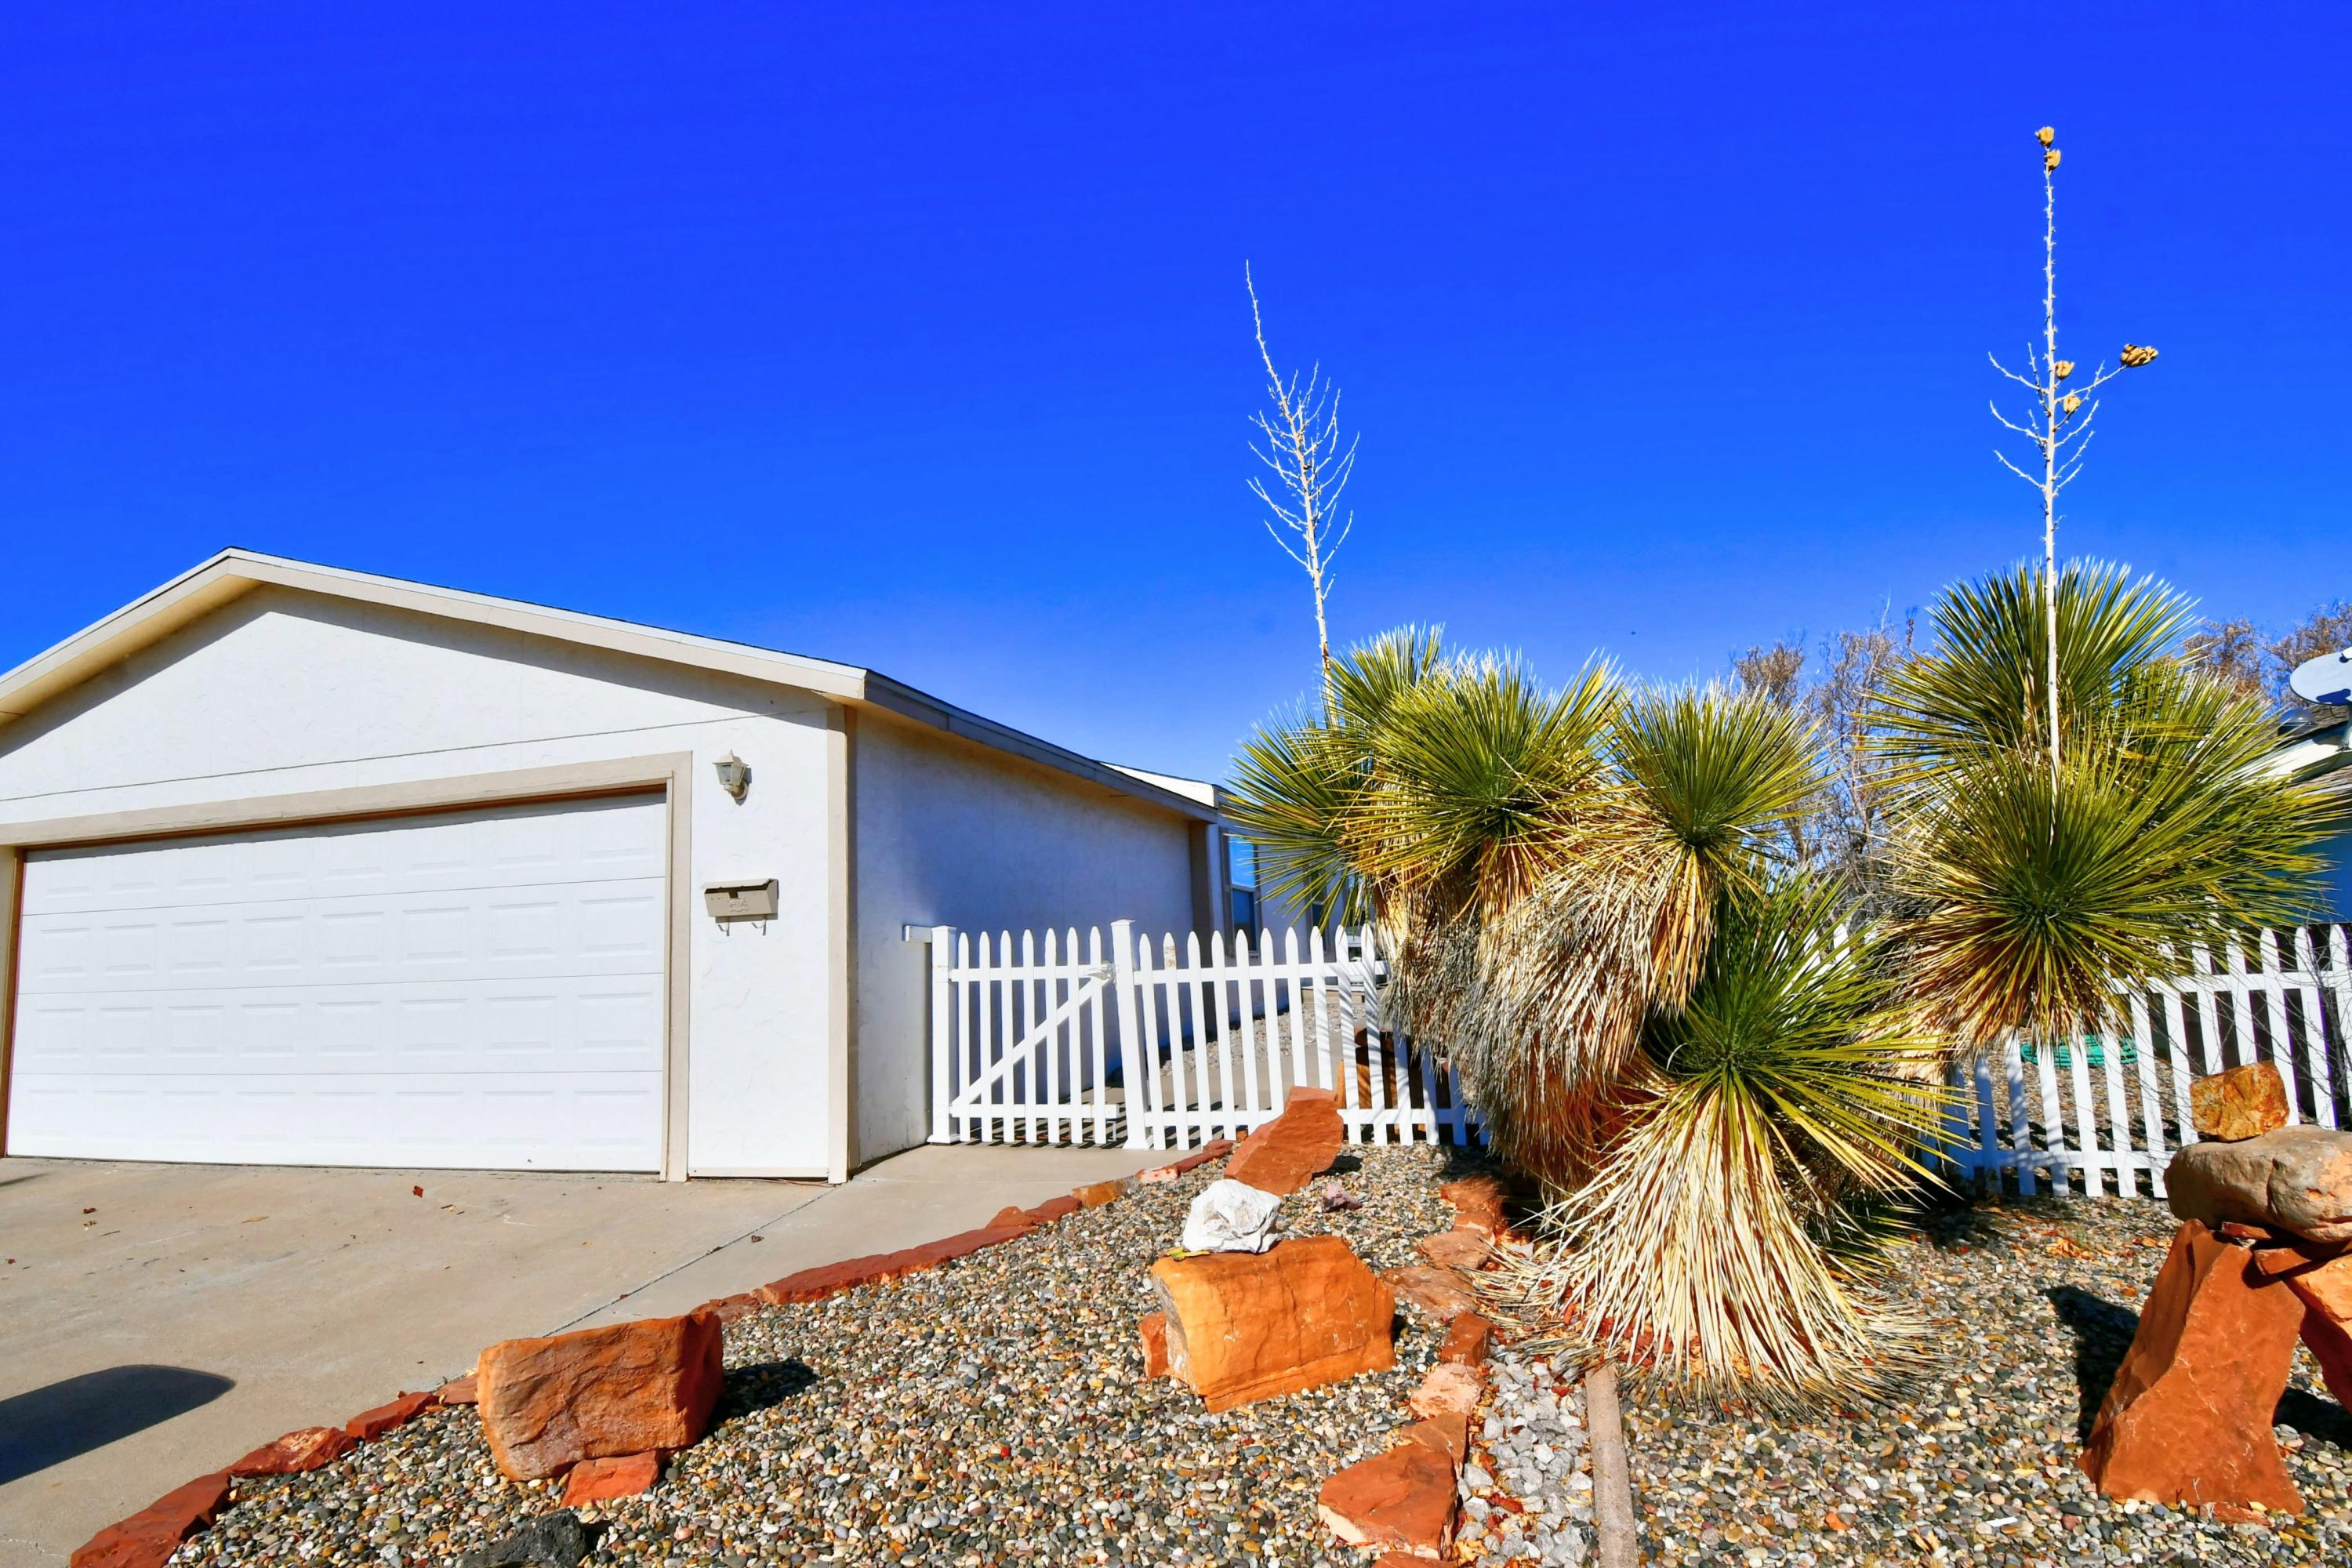 Come see this beautifully maintained home in the 55+ Community of Sunrise Bluffs! This 1904 SF home boasts 2x6 walls, a  fireplace, built-in bookshelves, huge master walk in closet, full landscaping, and a large kitchen. Enjoy the clubhouse which has an indoor pool, gym and activities. You will love living in this beautiful and peaceful community located 10 minutes south of Los Lunas and 30 minutes south of ABQ!